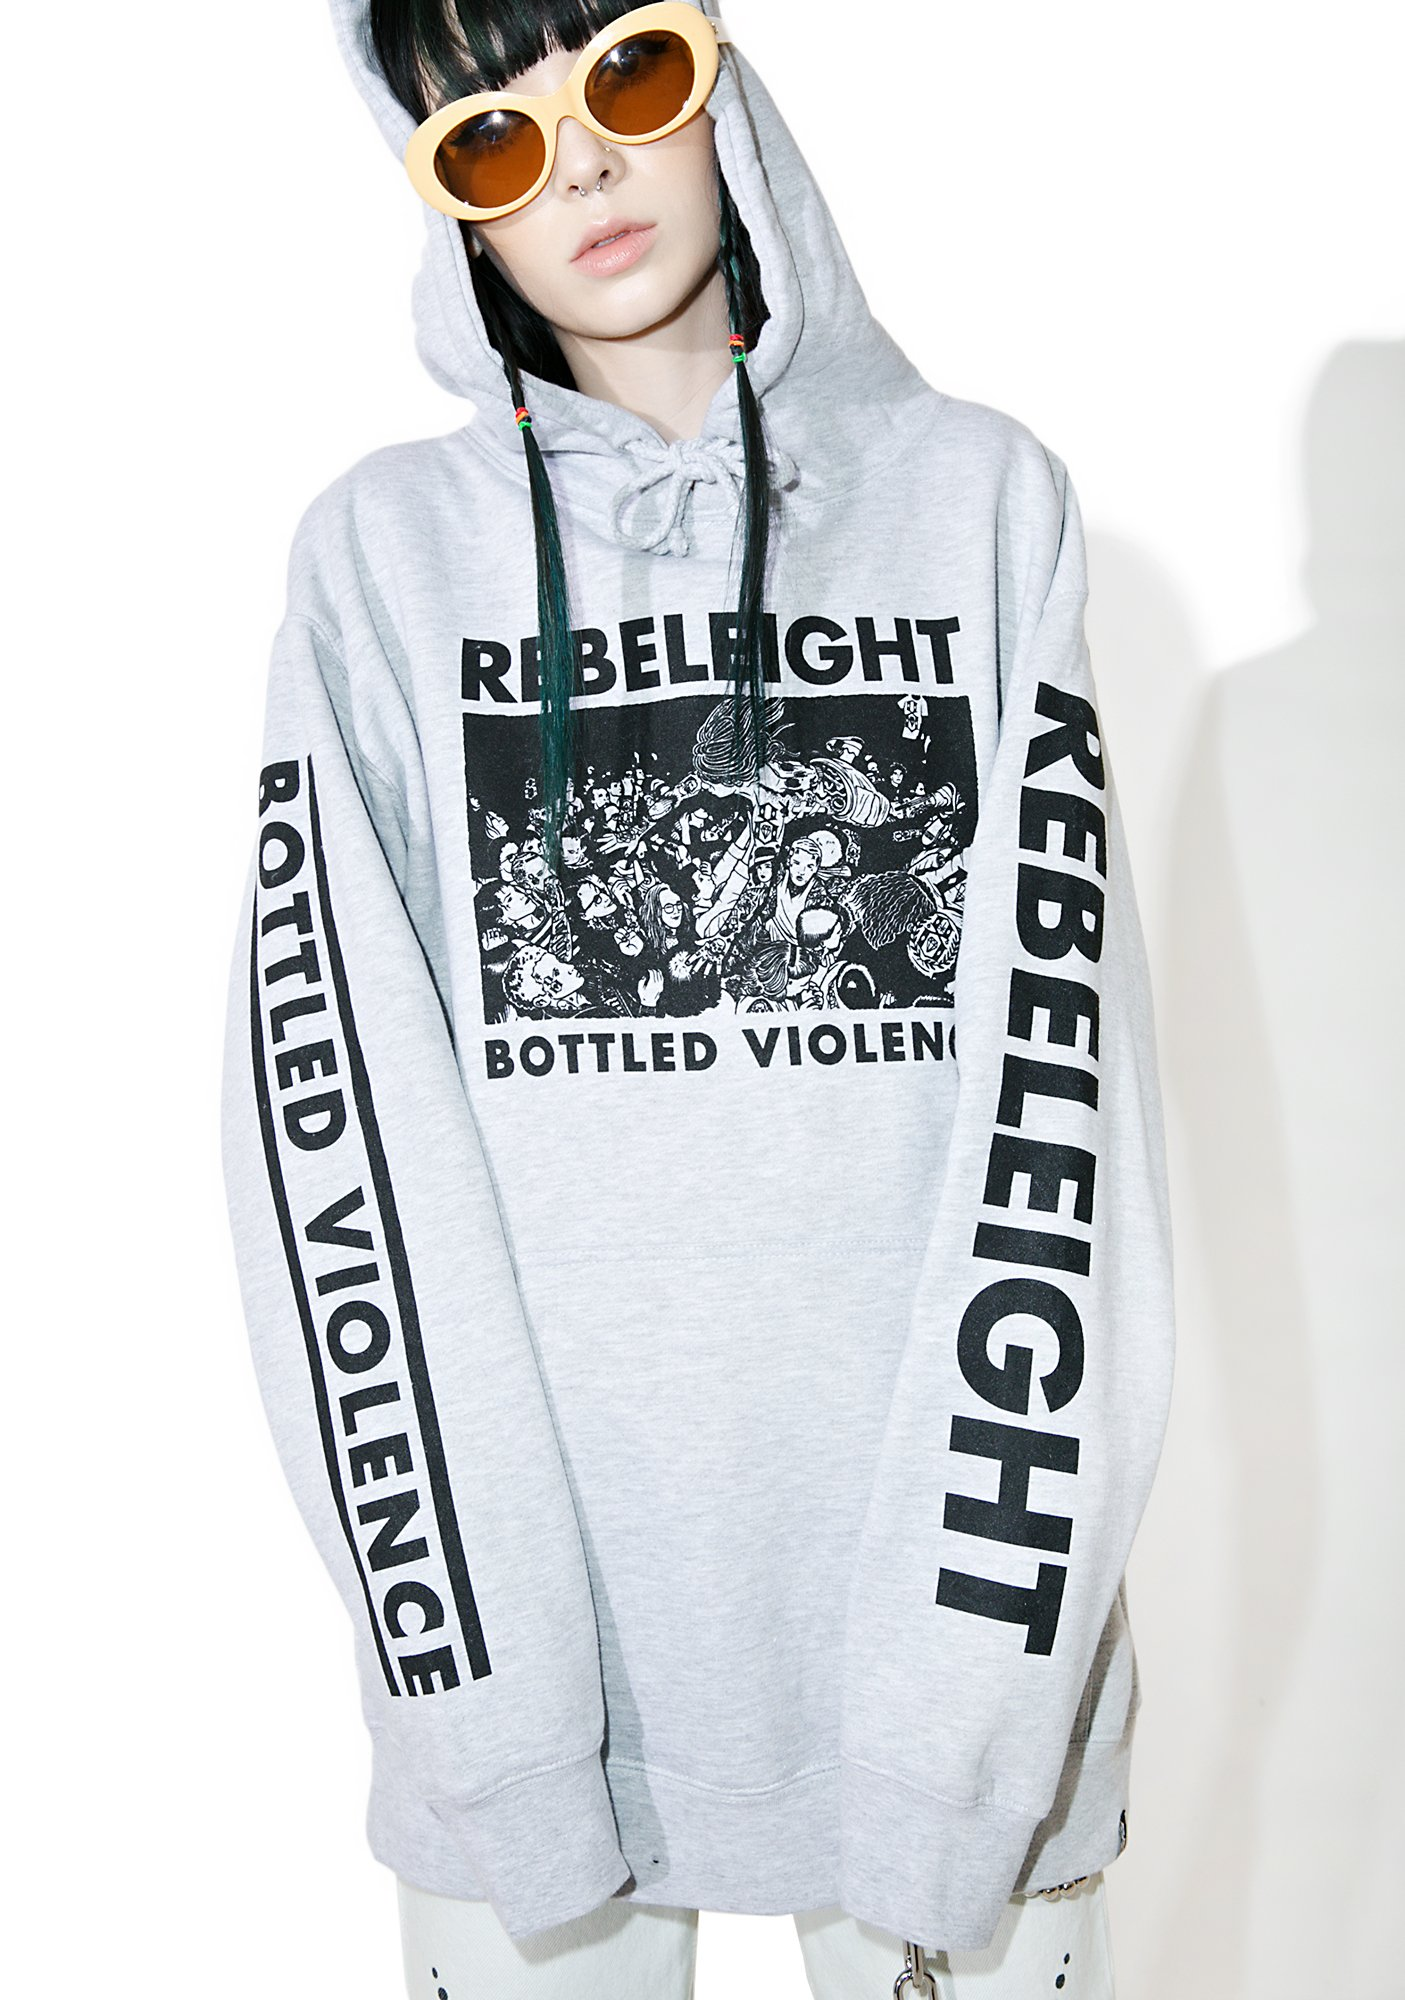 Rebel8 Bottled Violence Pullover Hoodie